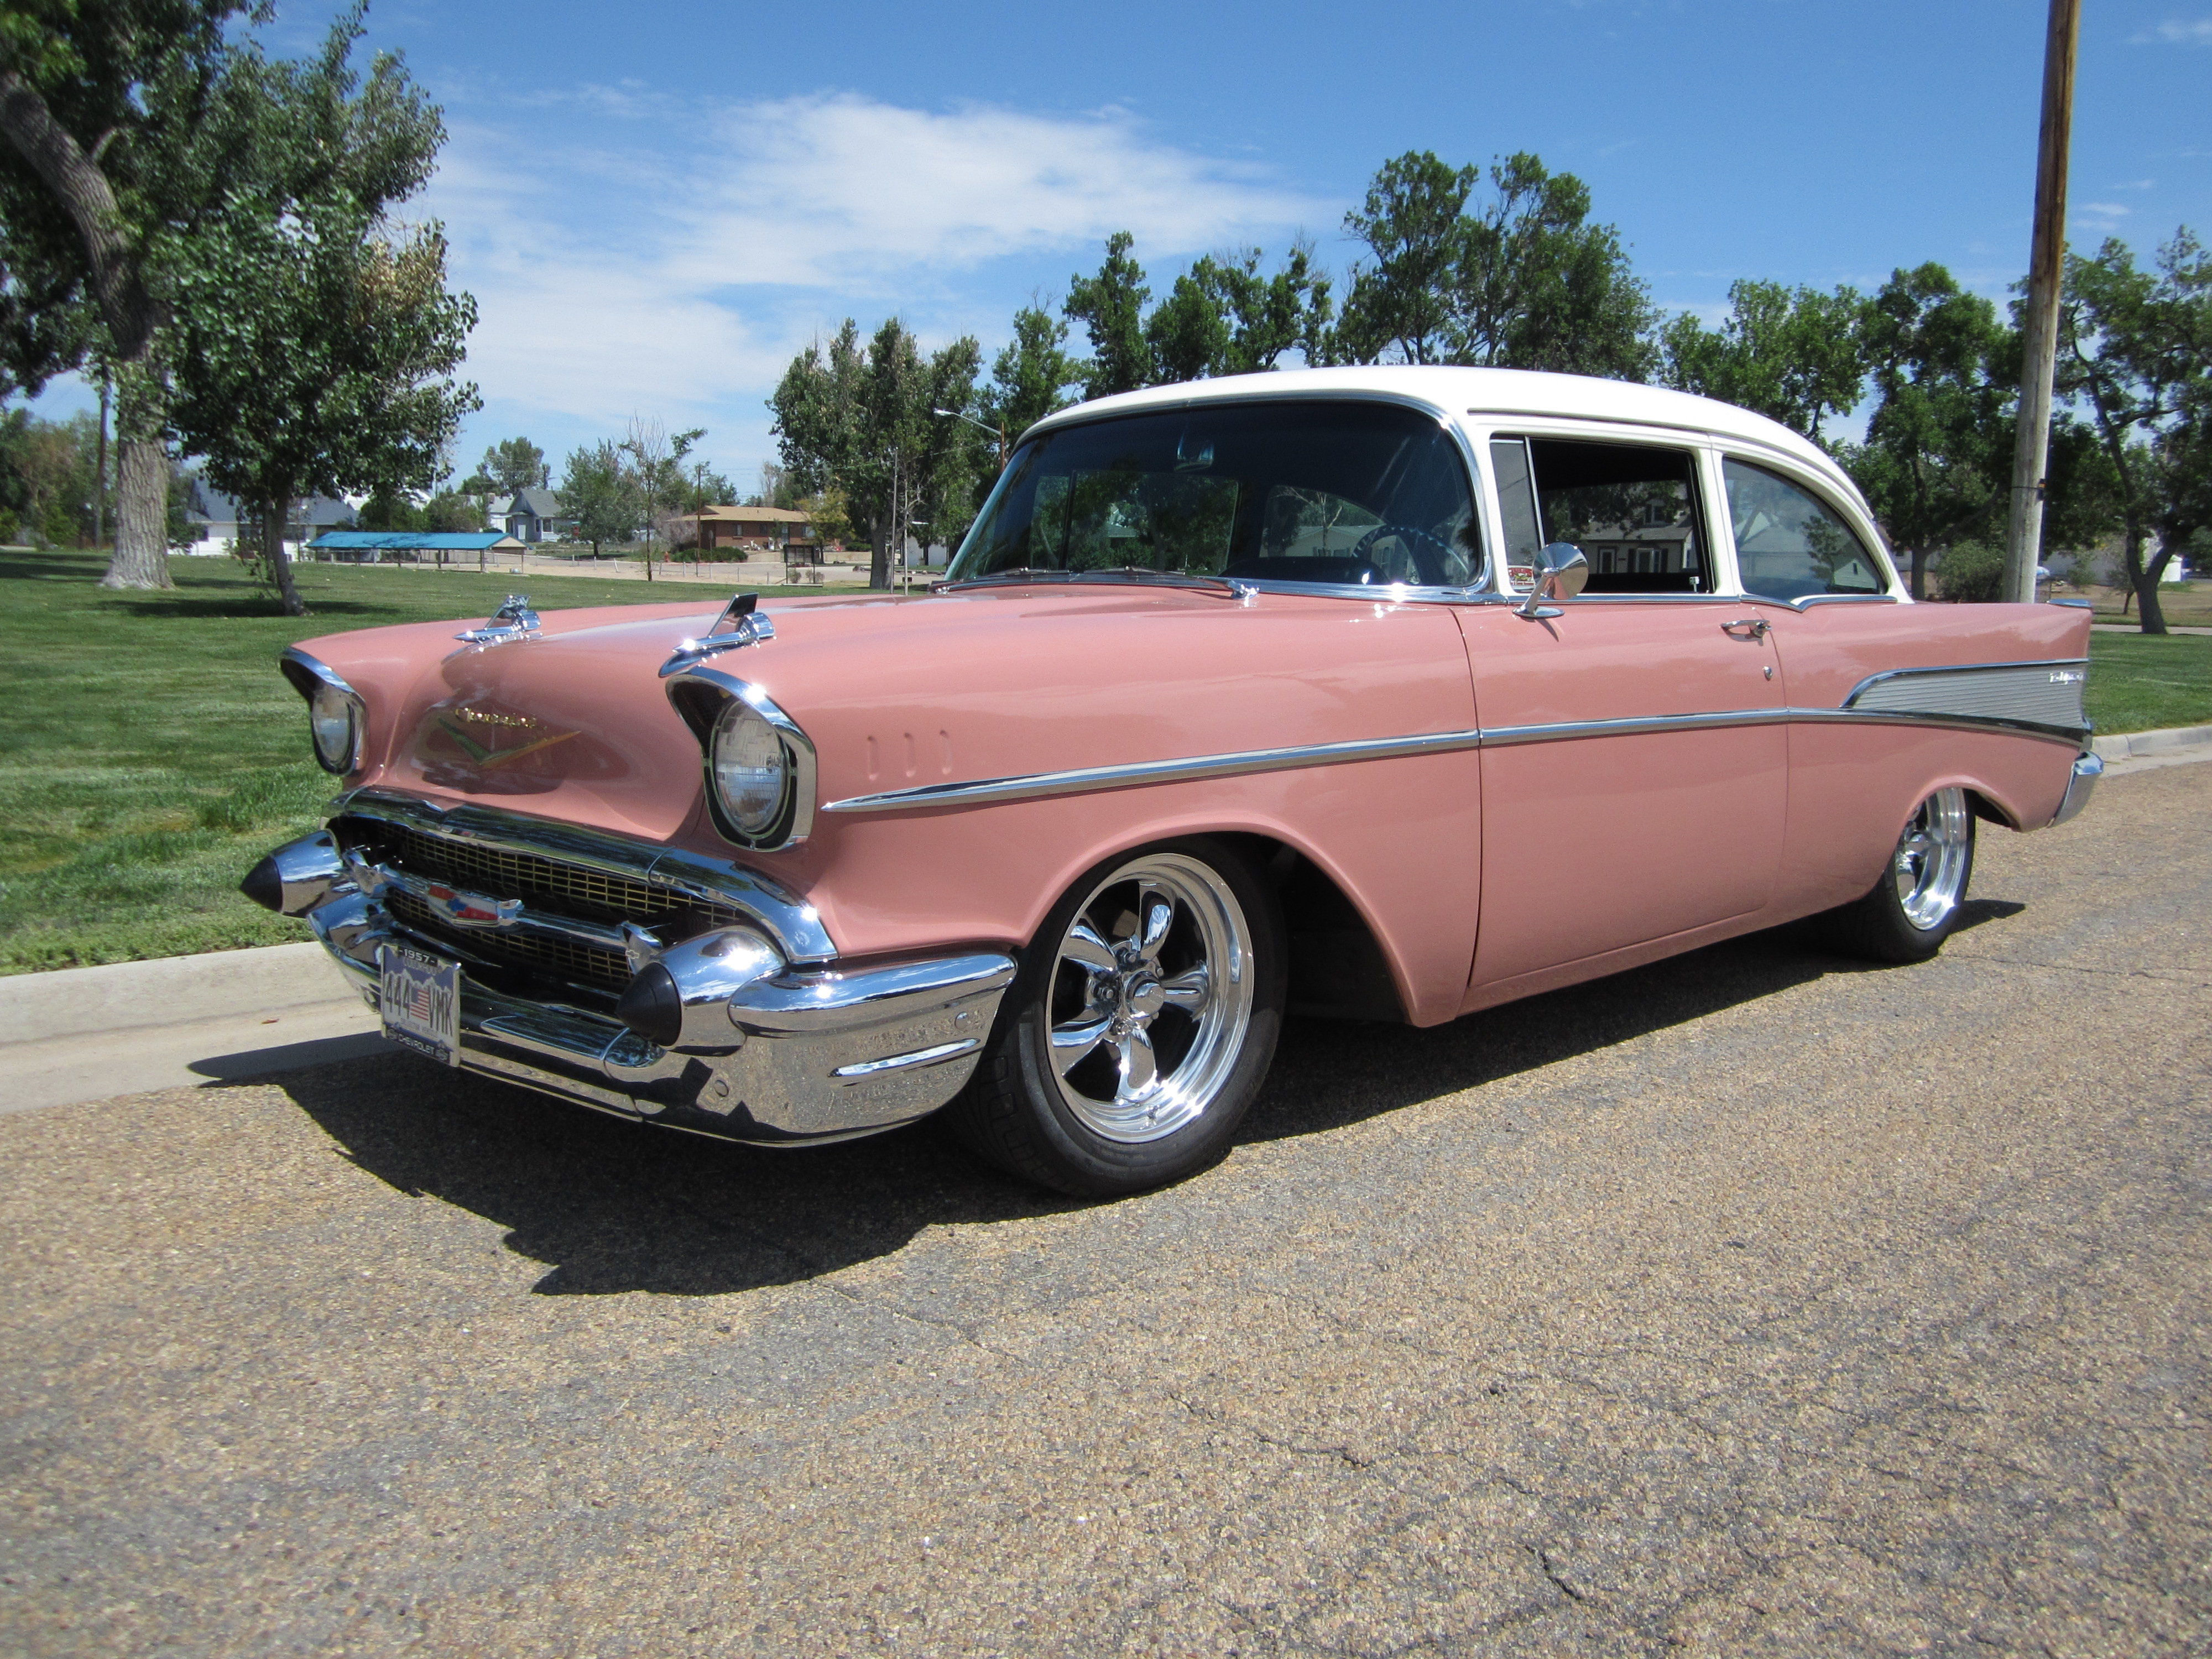 Car That Runs On Air >> Is the 57' Chevrolet Bel Air better than the 55' and 56'?